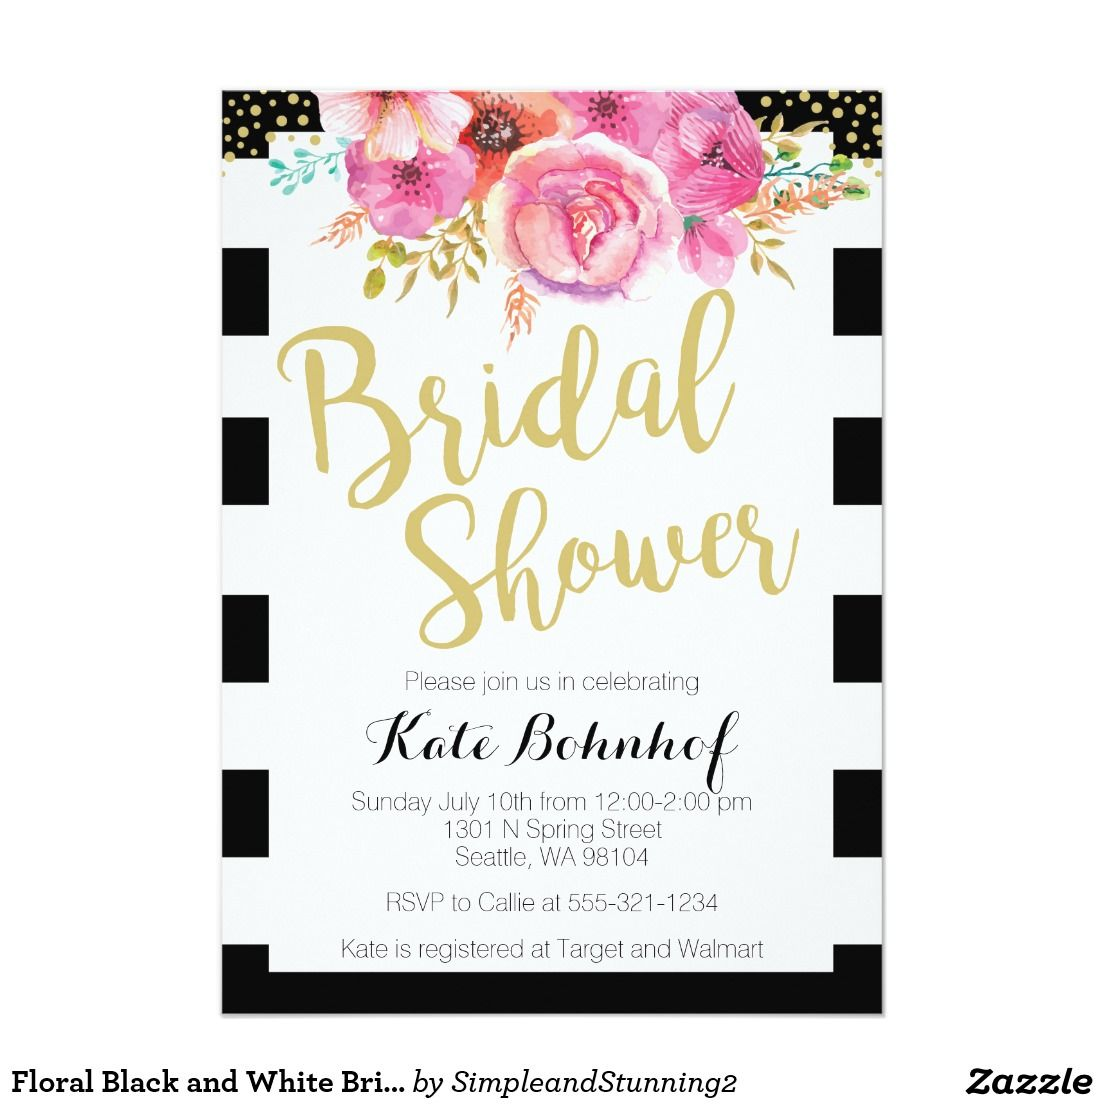 Floral Black and White Bridal Shower Invitation | How To Plan The ...